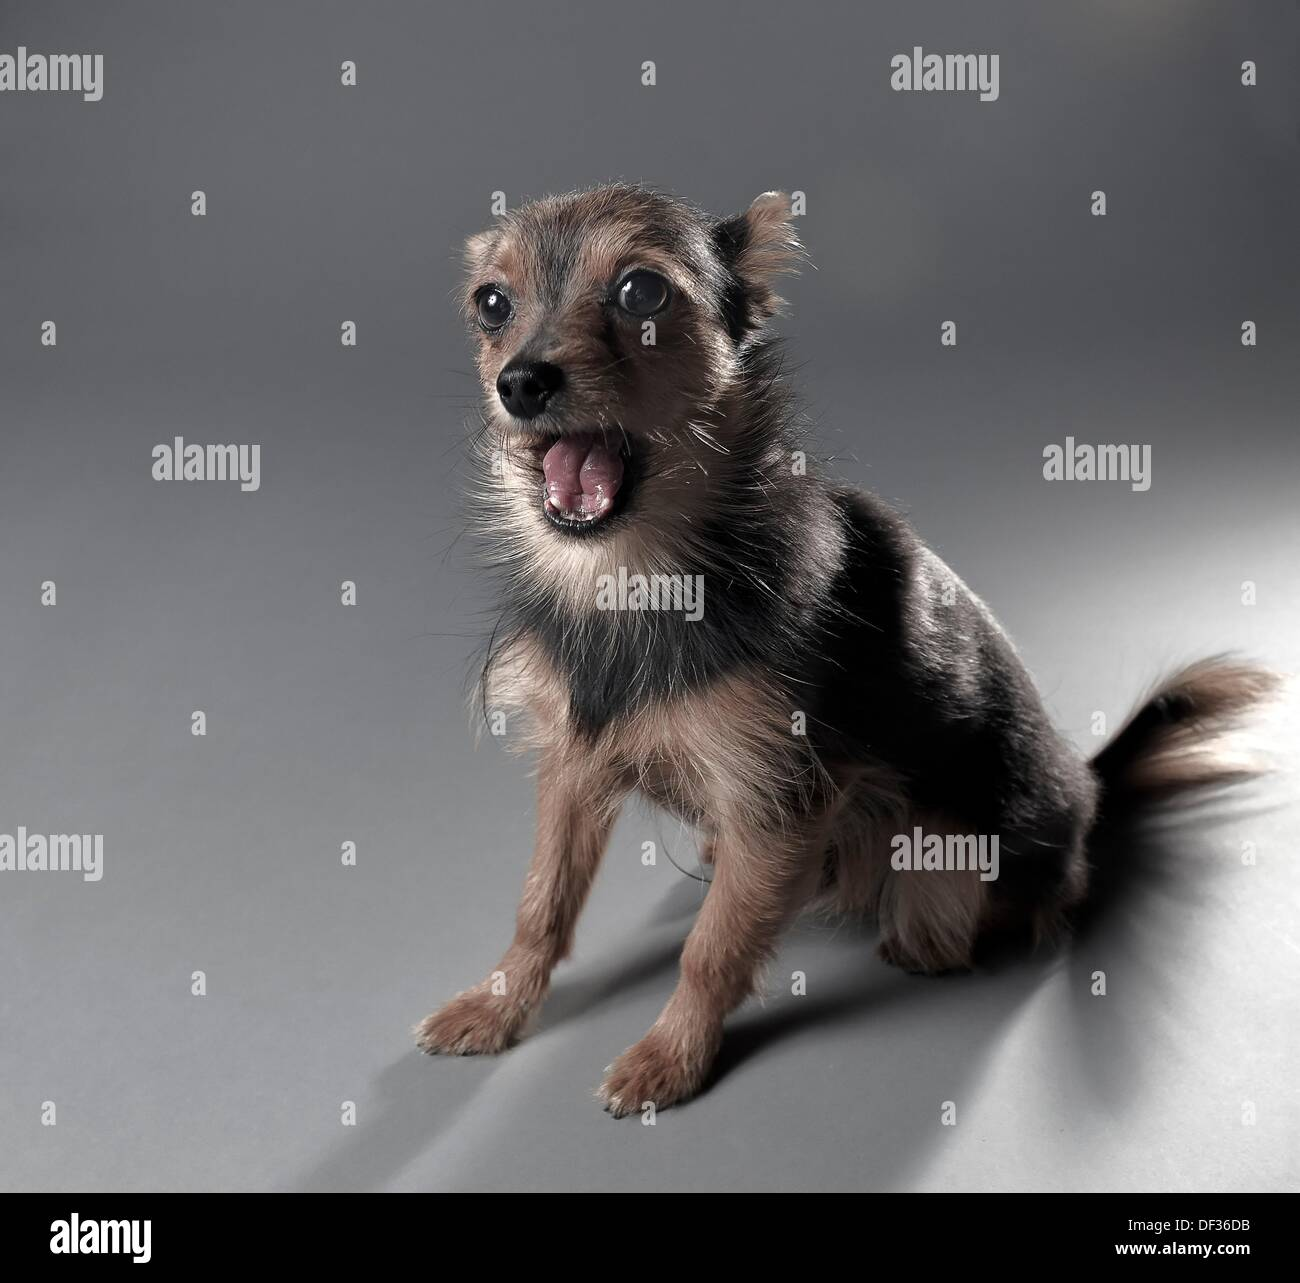 Silly Looking Dog Making A Funny Face Stock Photo 60921879 Alamy